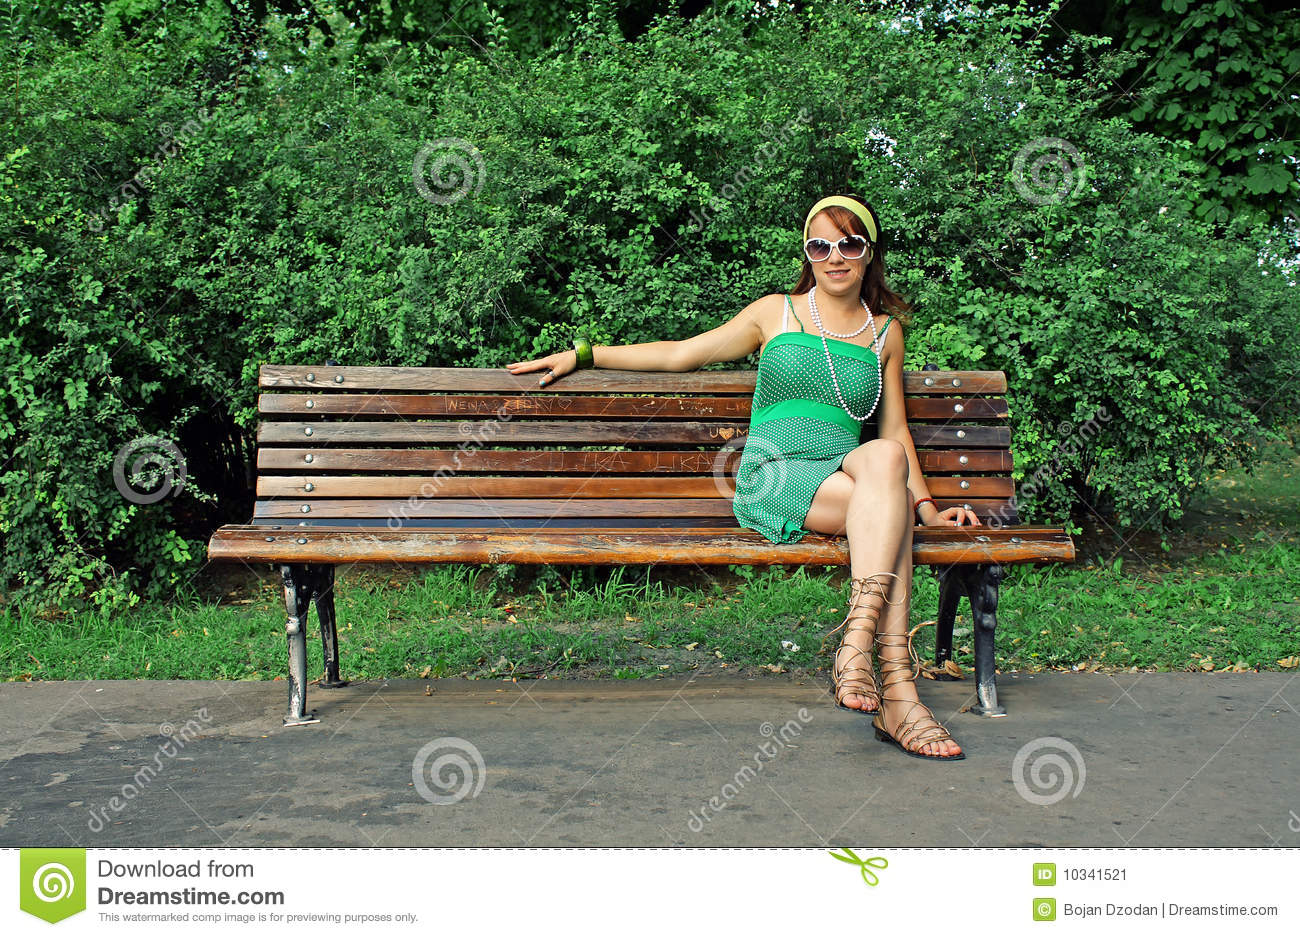 On Naked bench woman